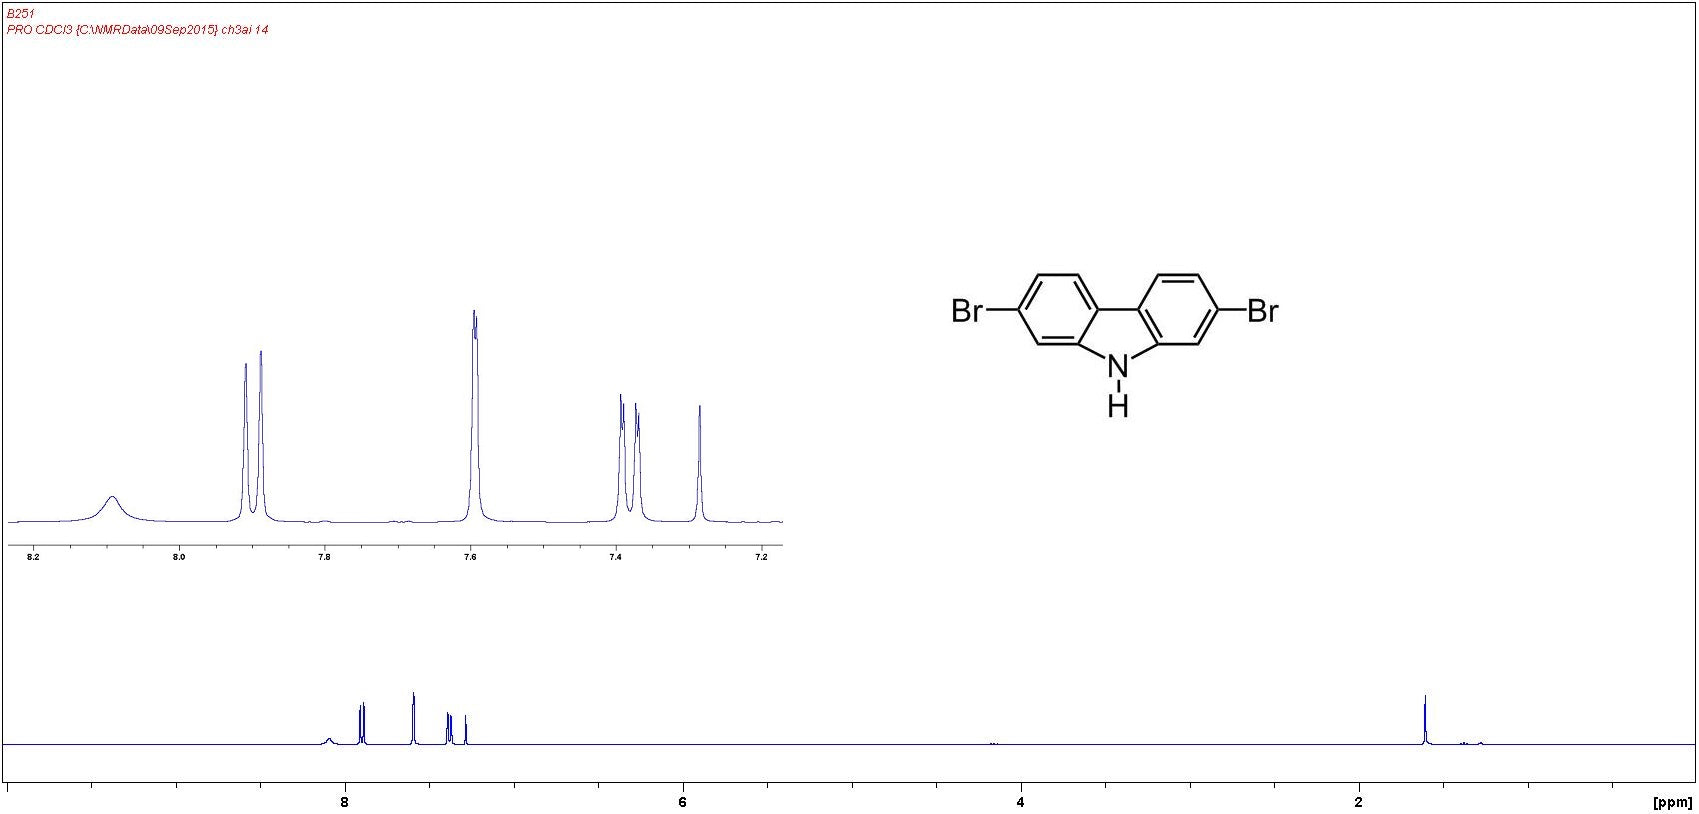 1H NMR of 2-7-dibromocarbazole in CDCl3